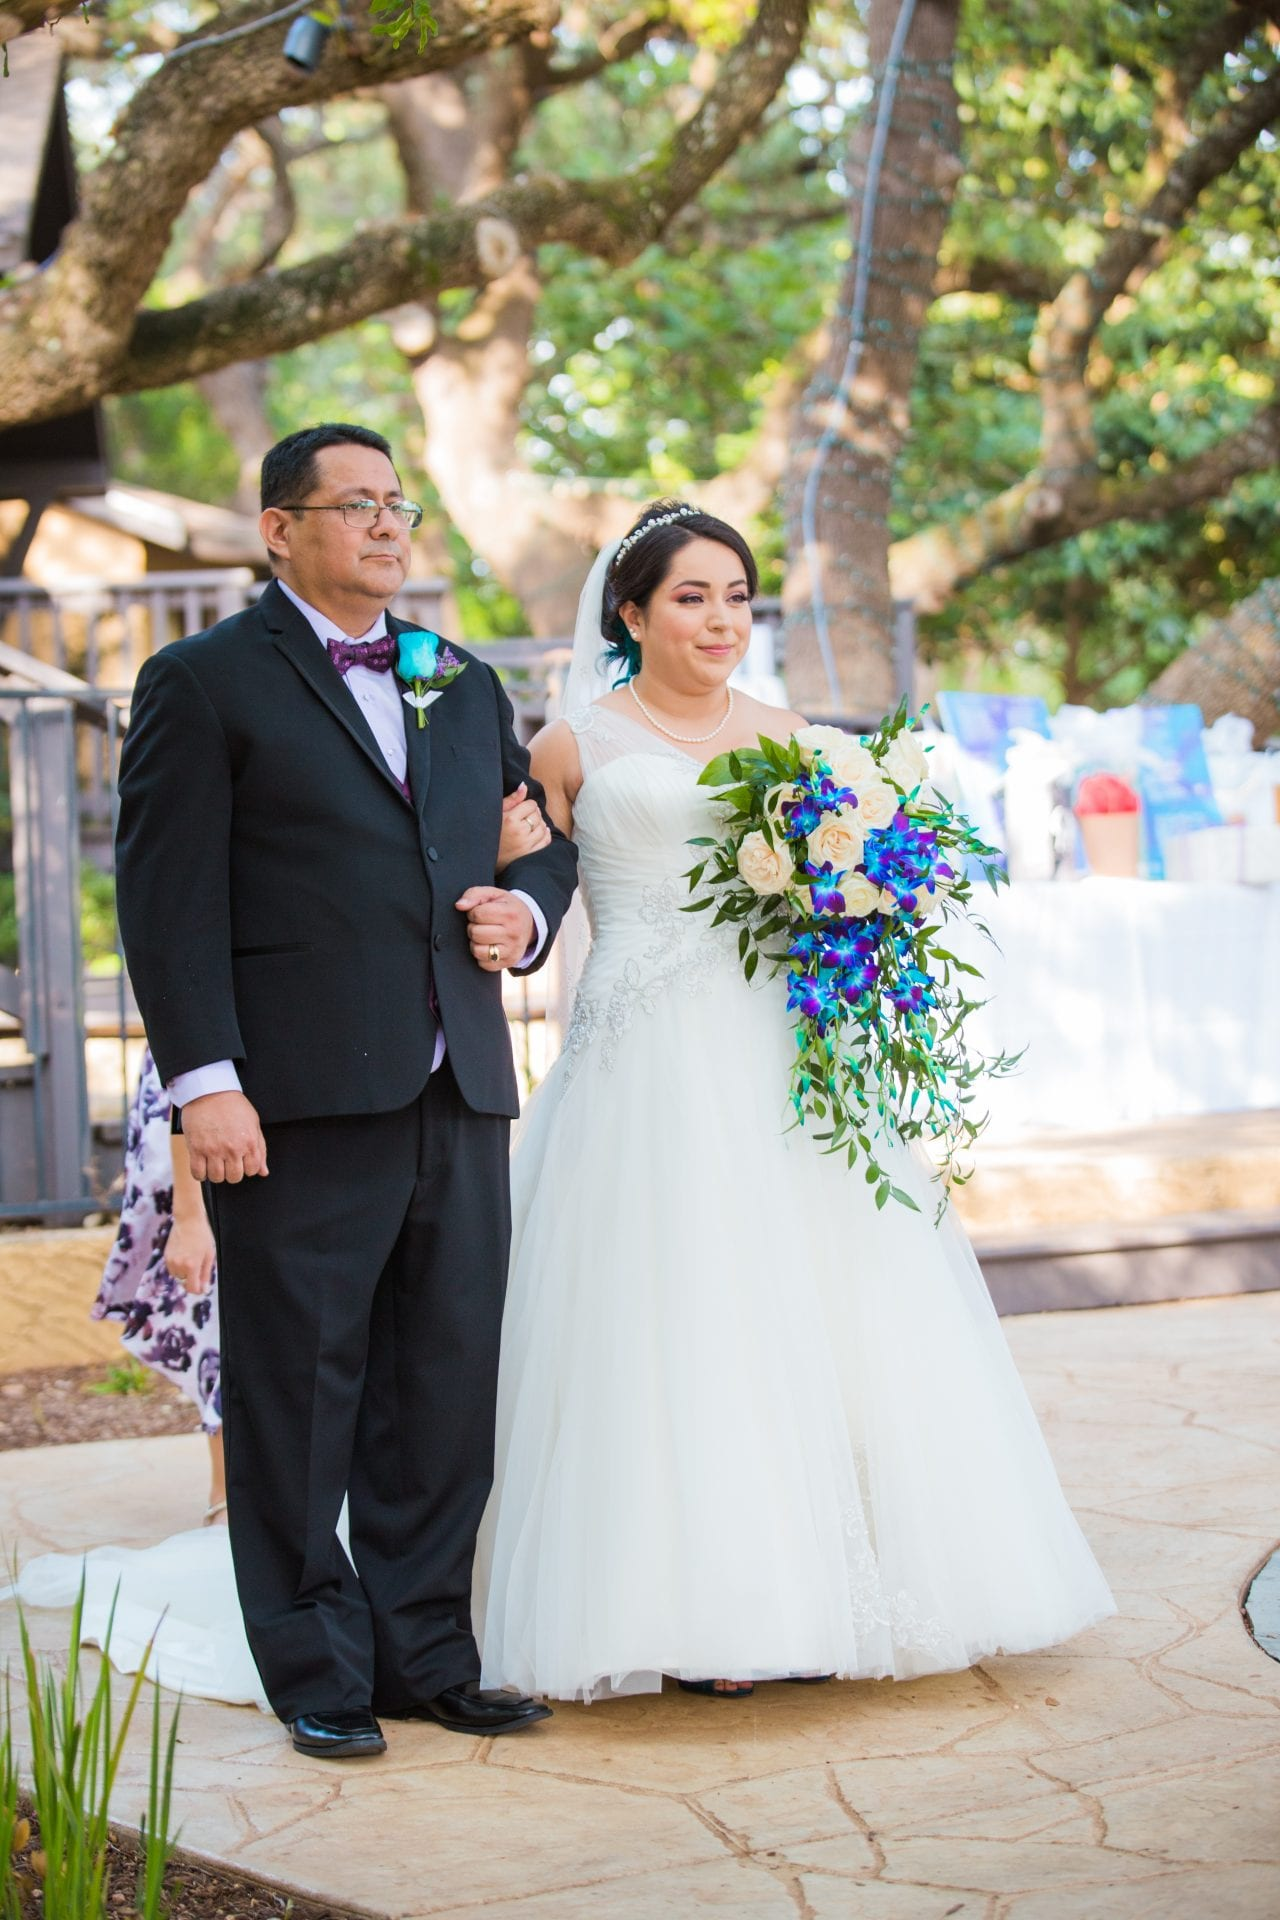 Alex and Adrien Wedding at The Gardens at Old Town walk aisle